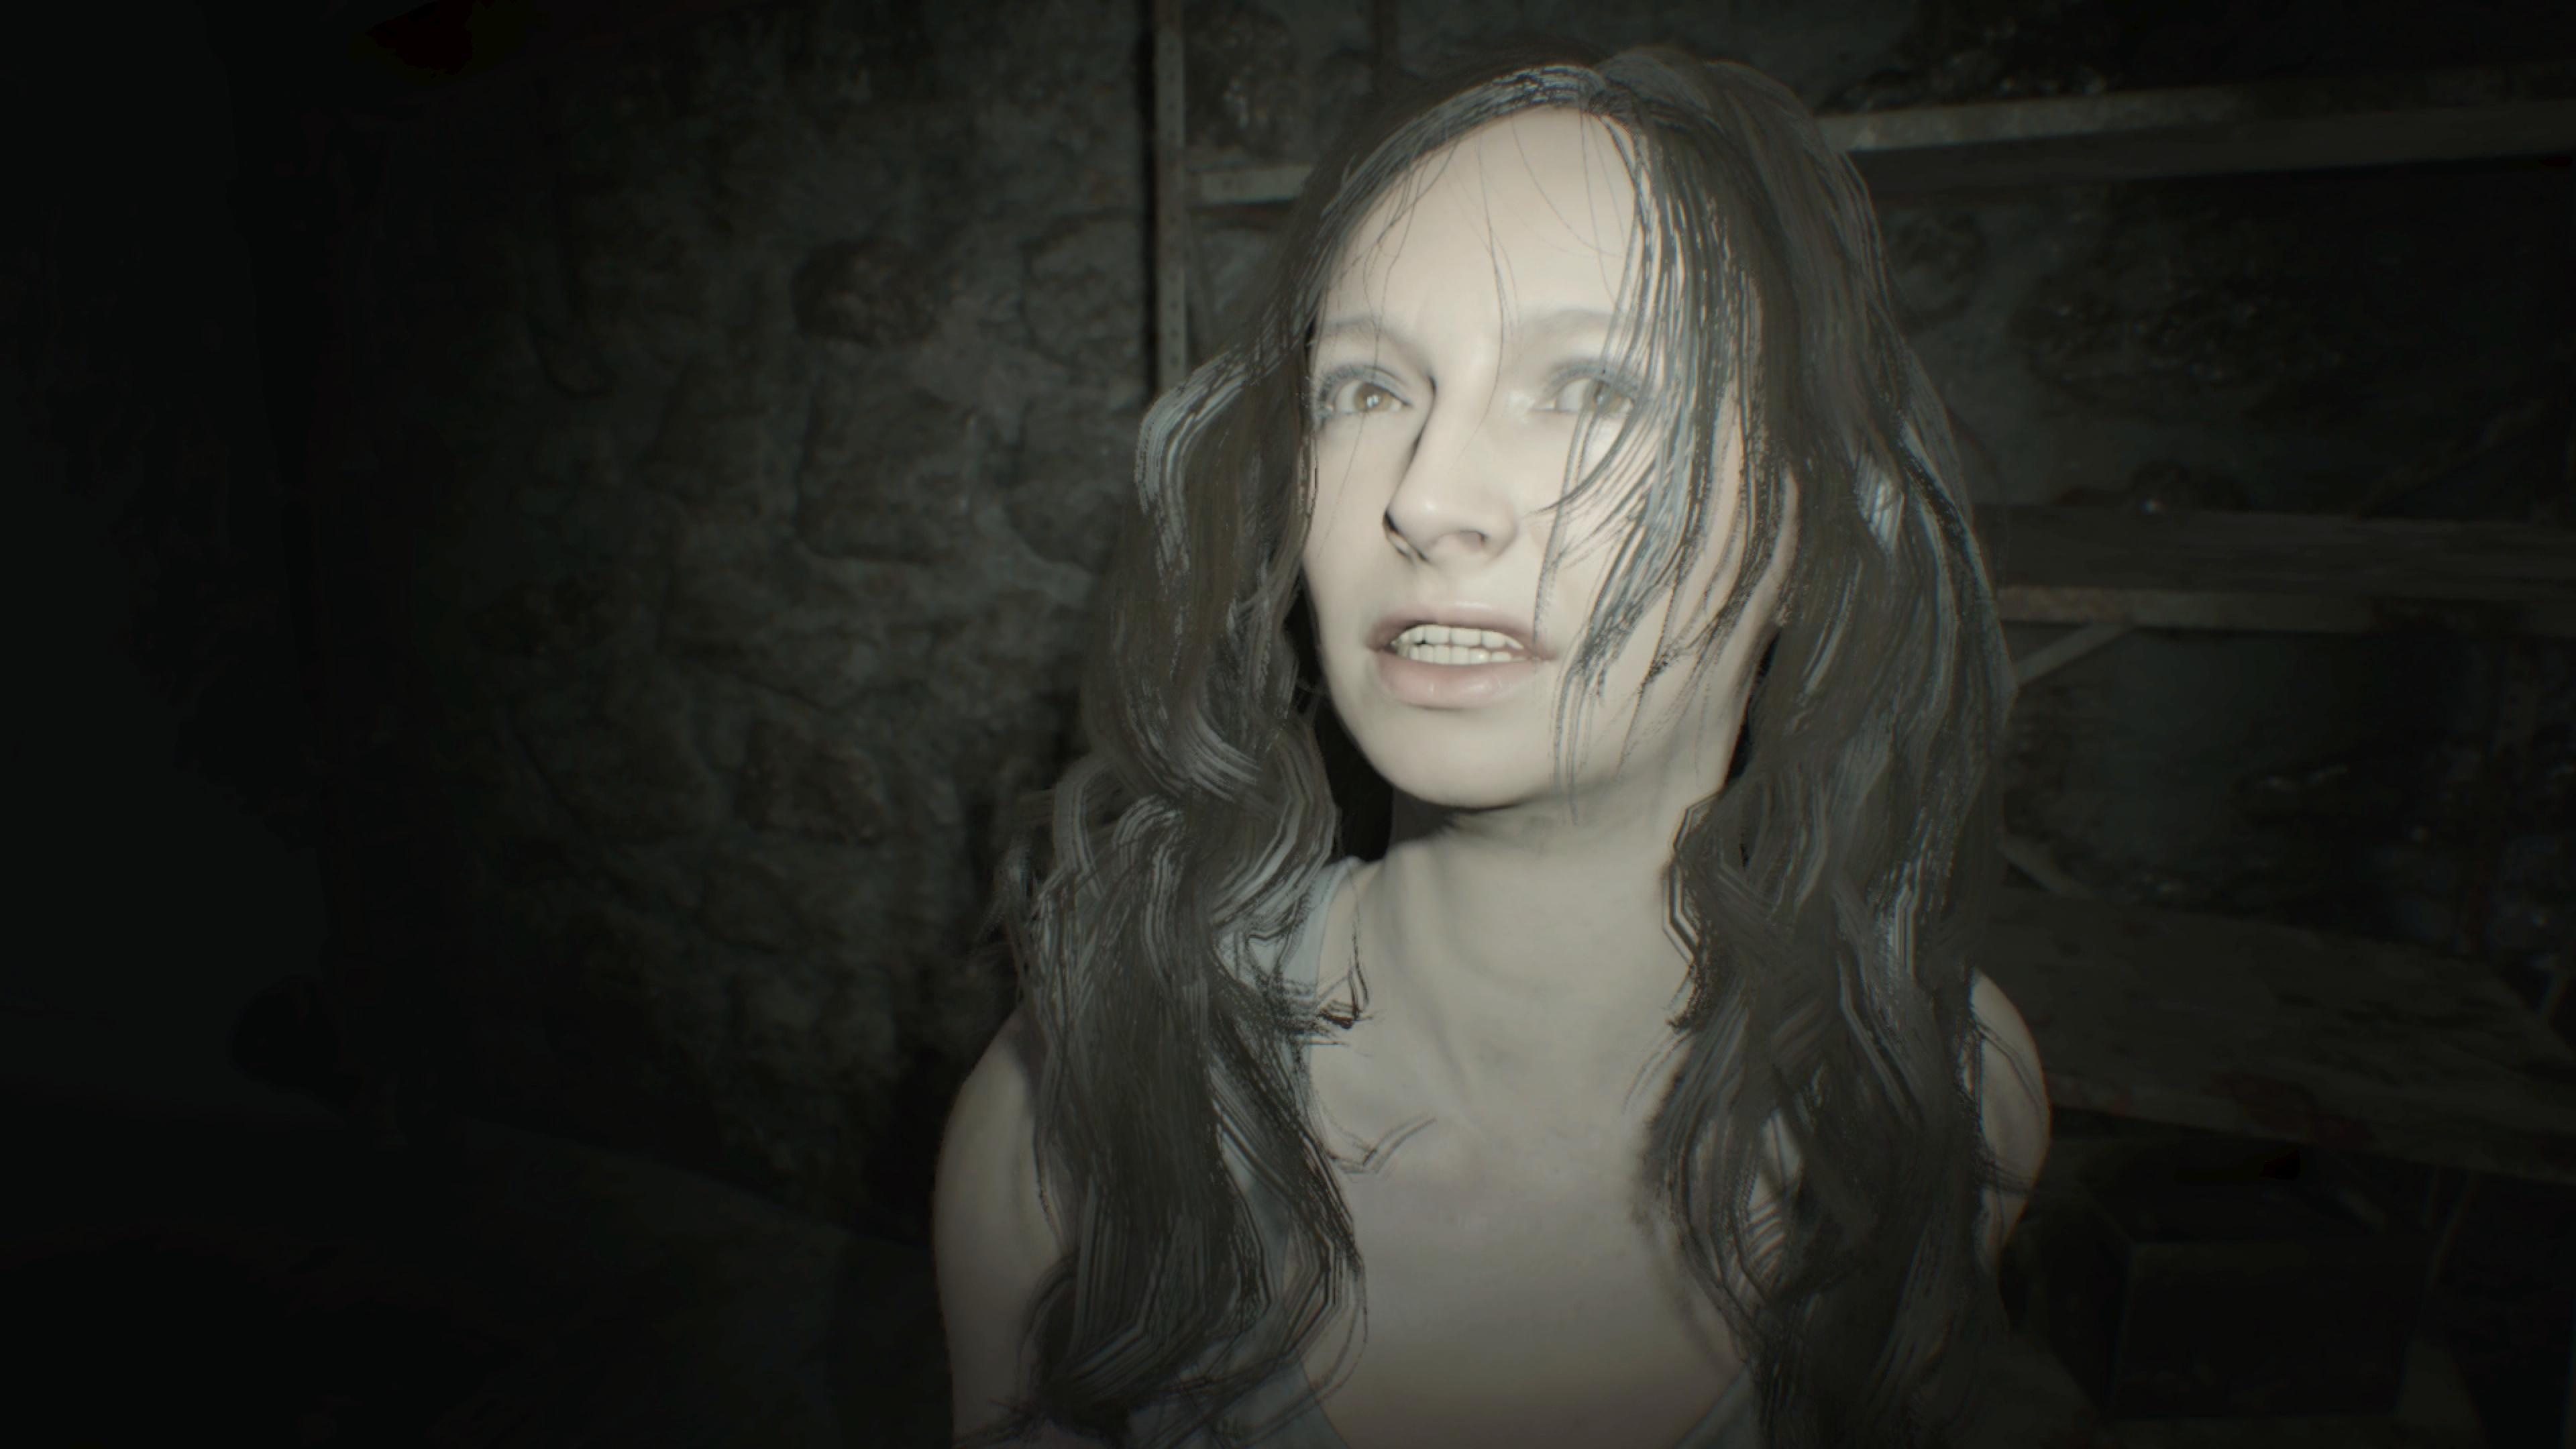 Resident Evil 7 characters Mia